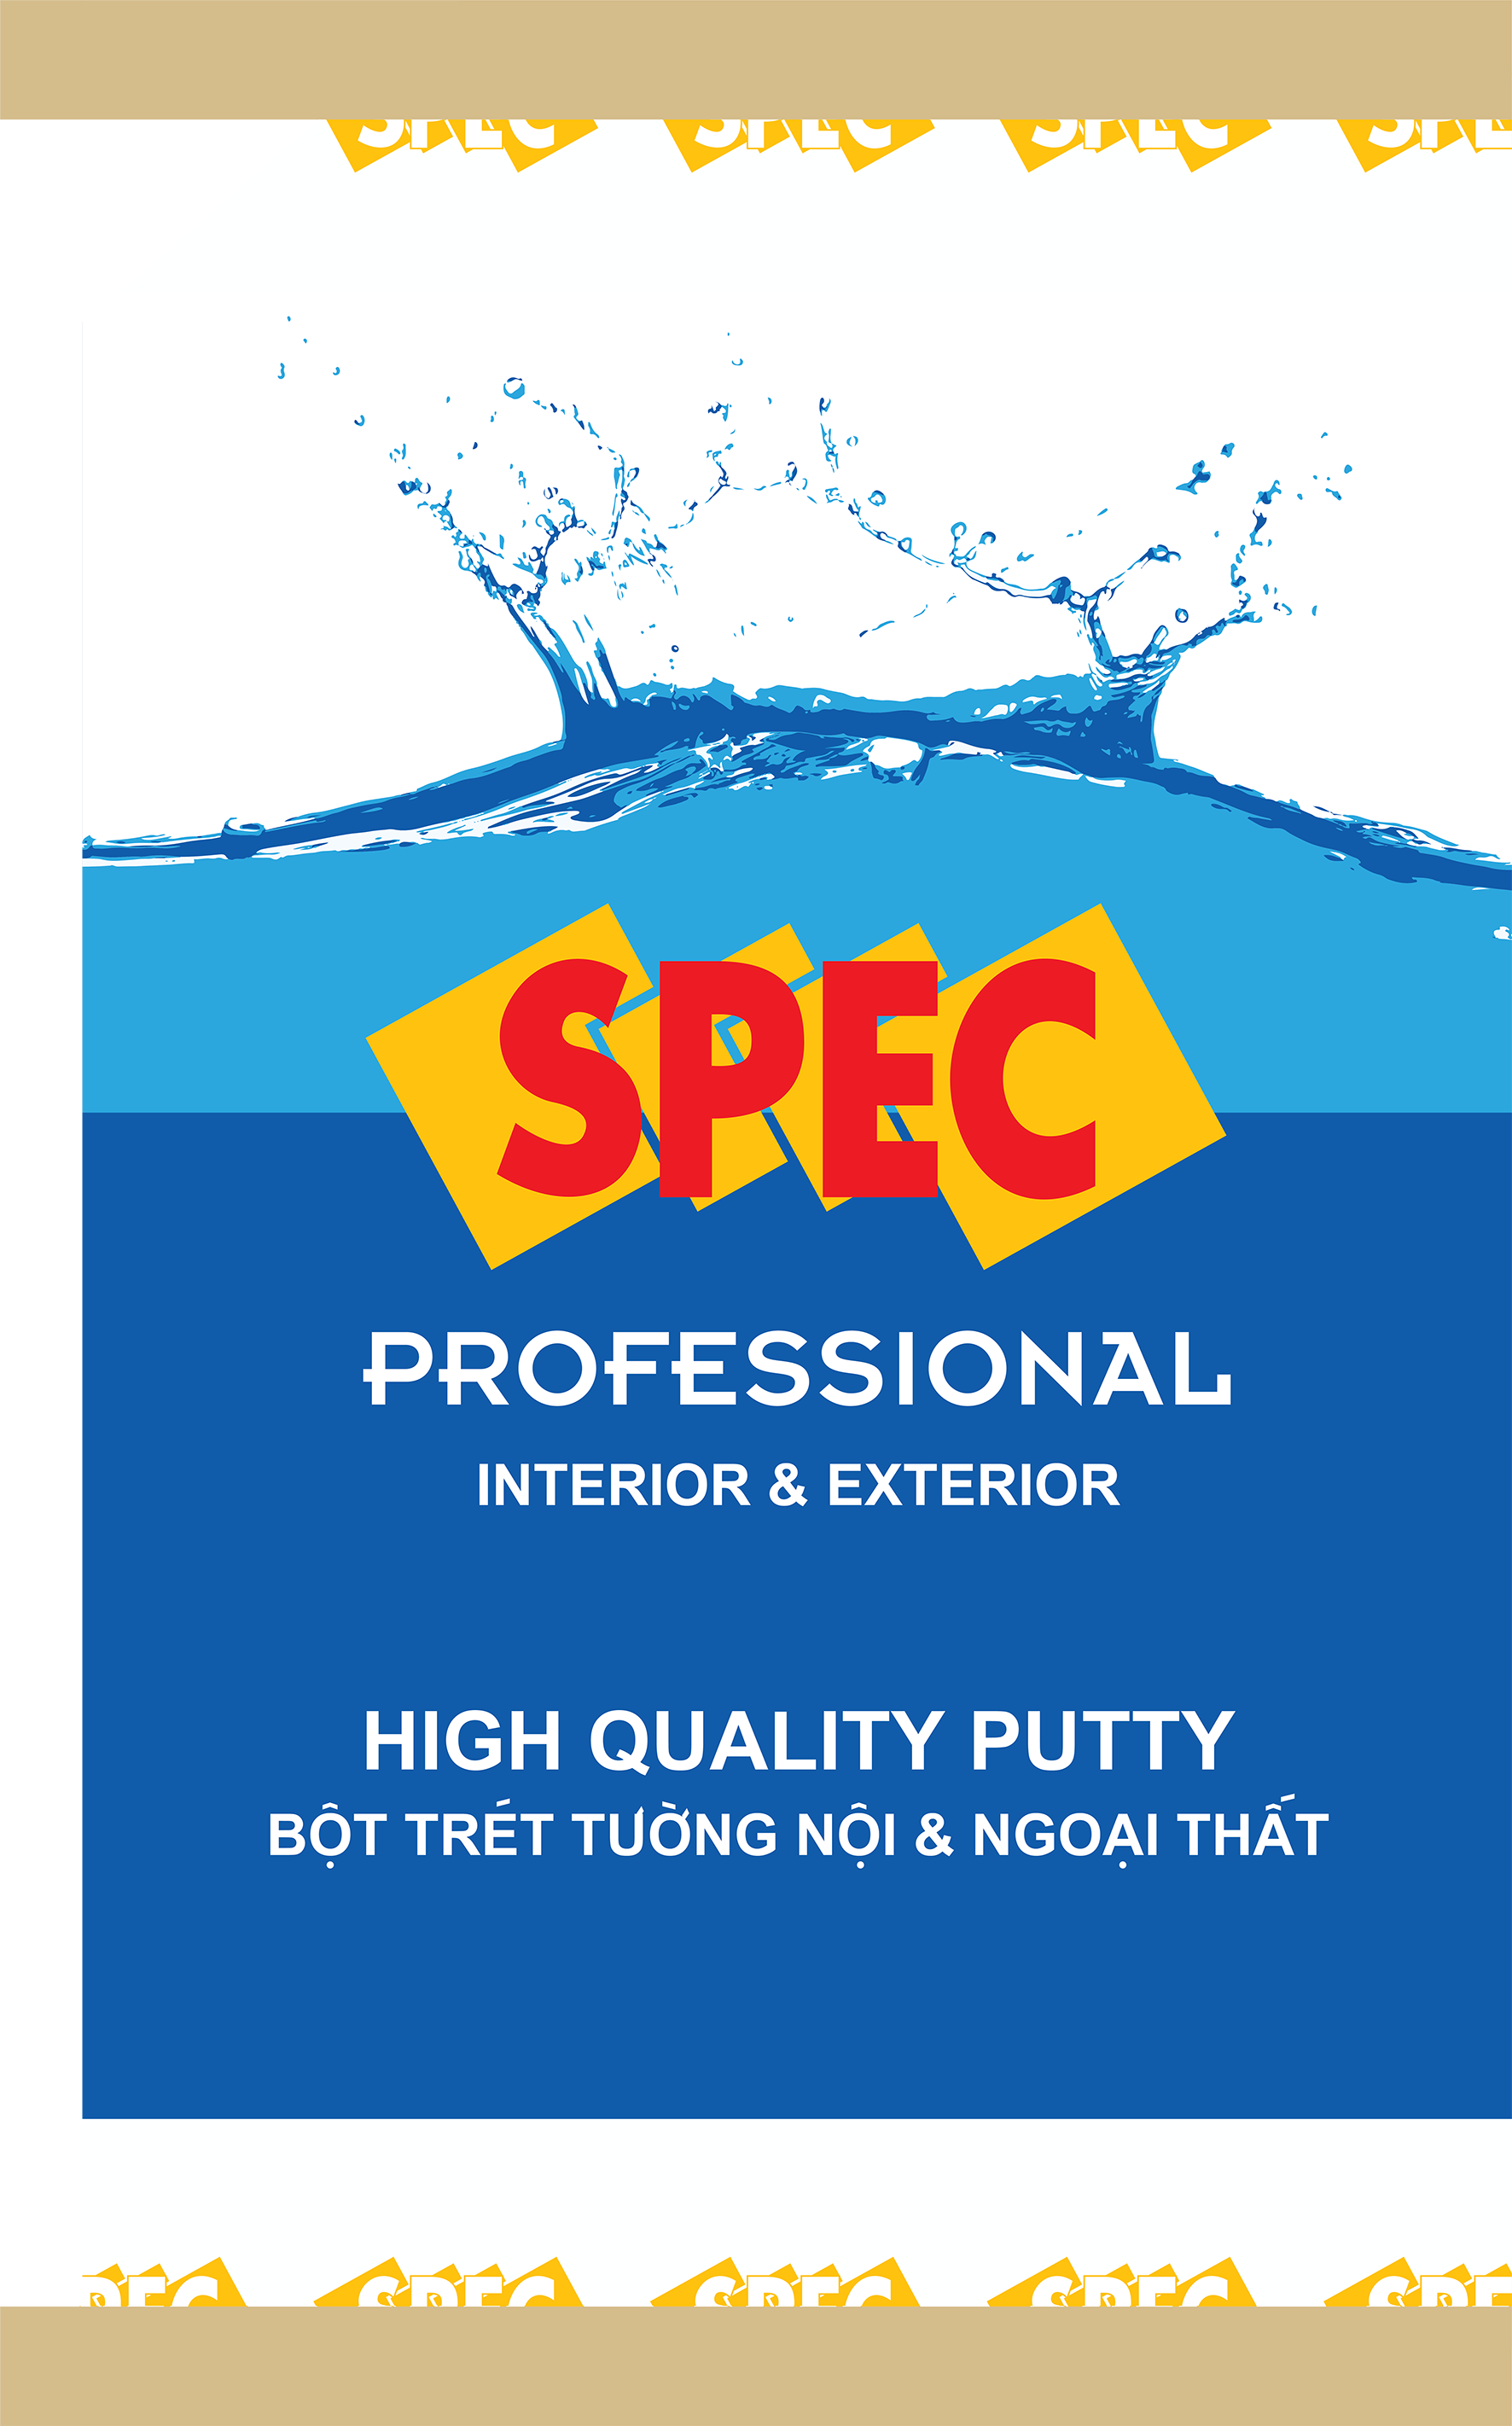 BOT TRET SPEC PROFESSIONAL PUTTY INT & EXT